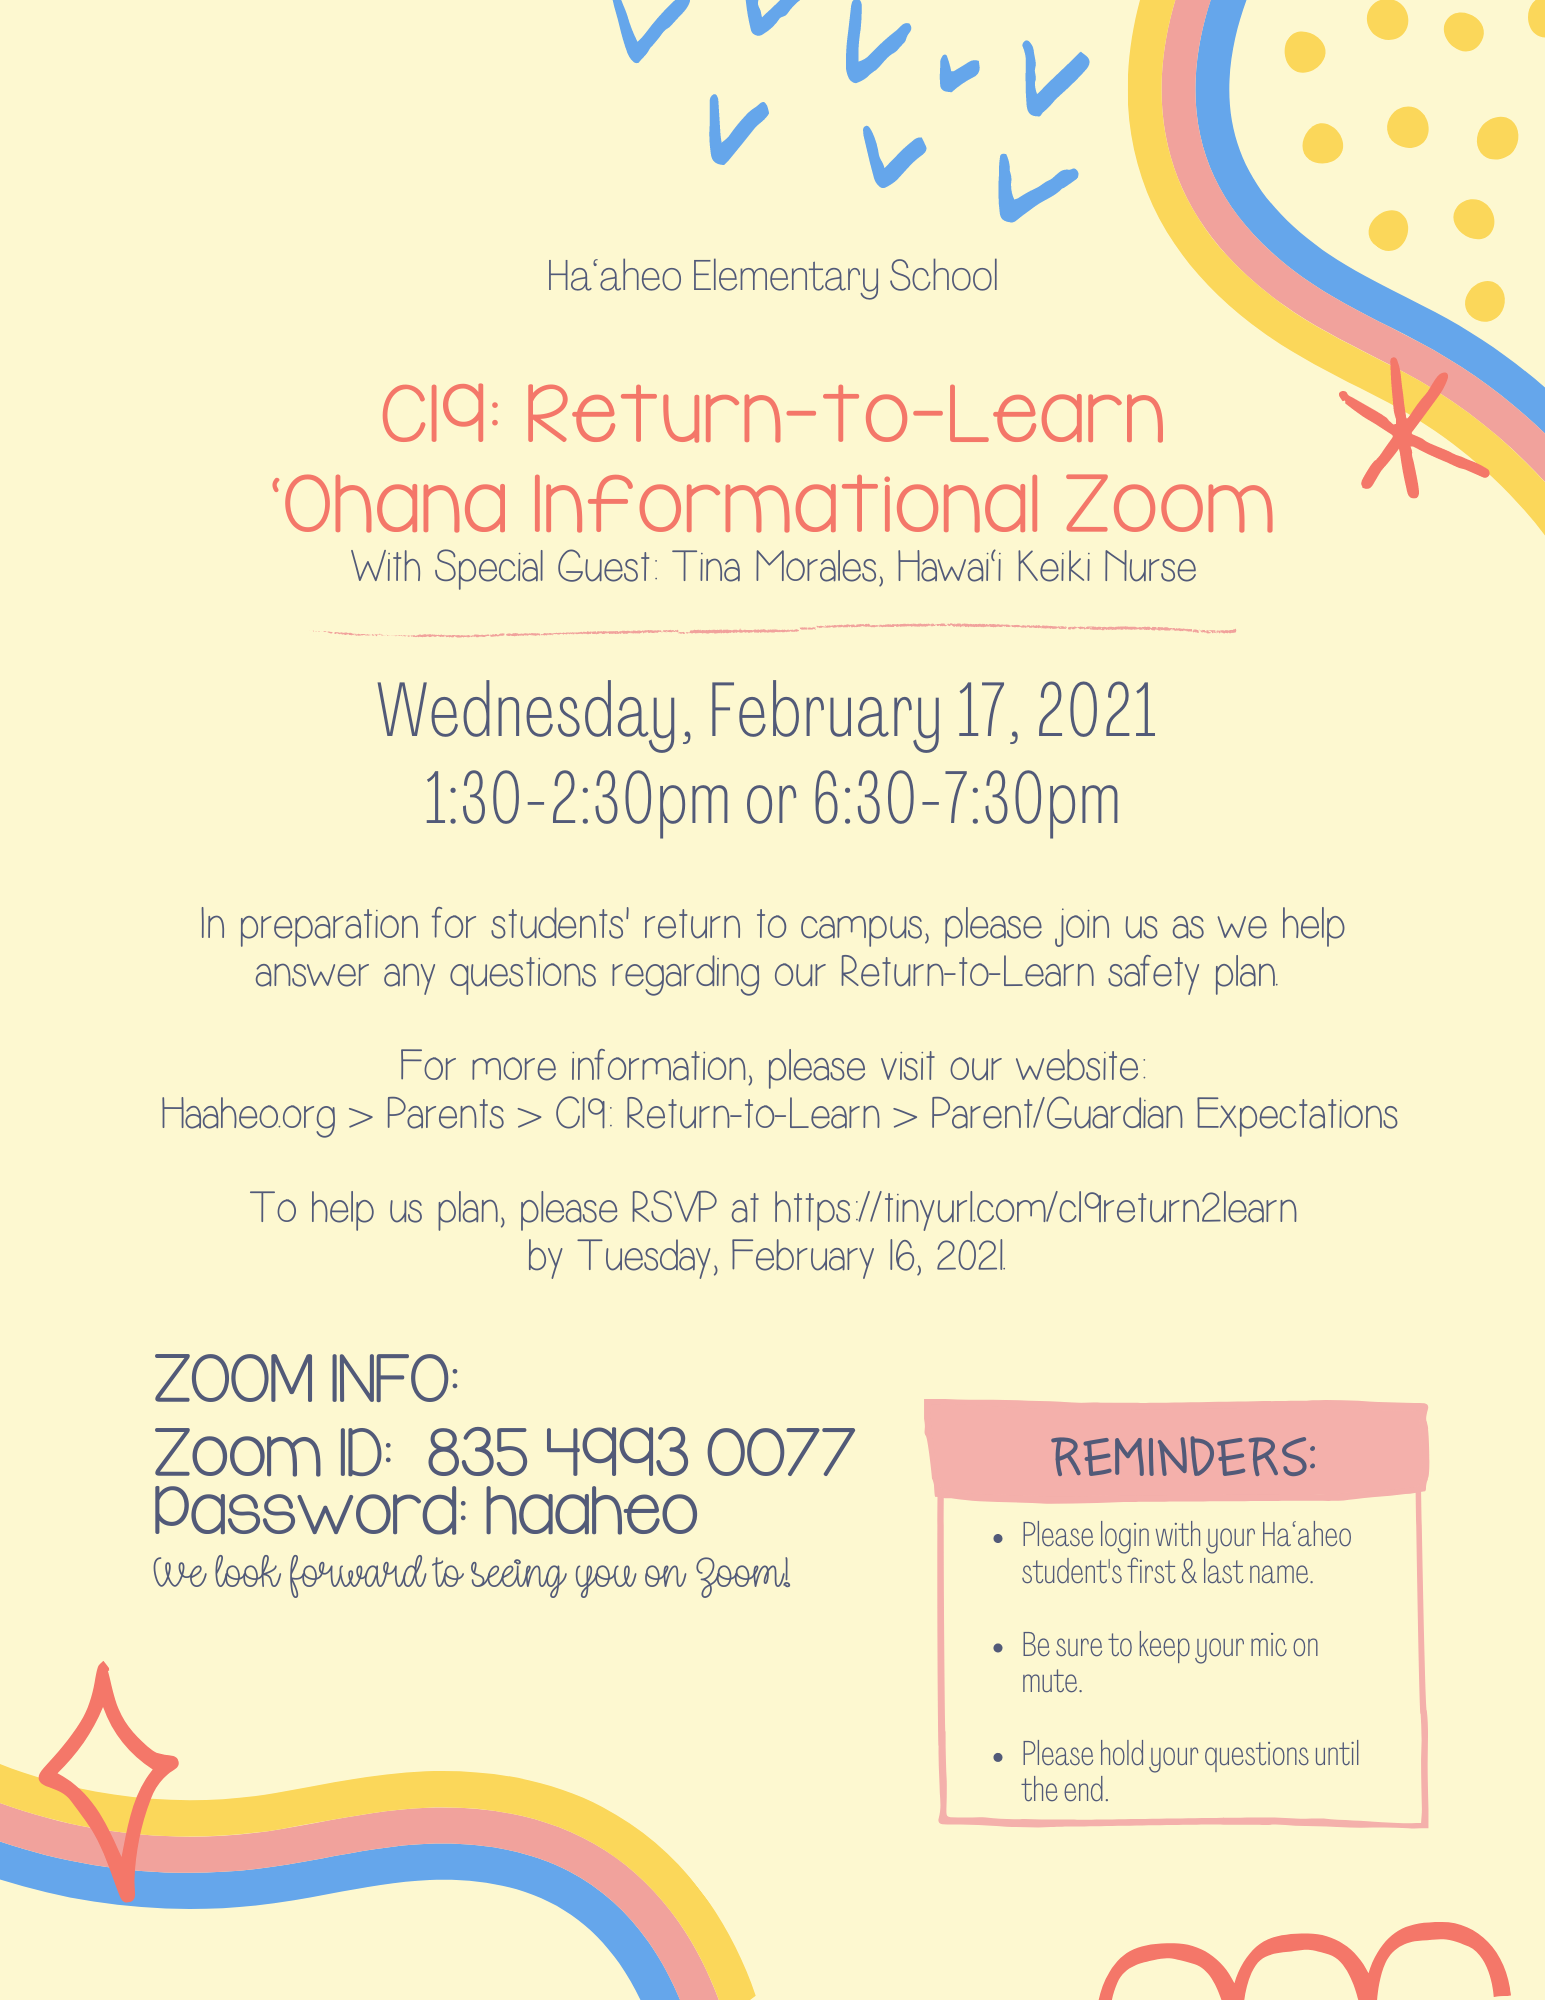 C19: Return-to-Learn Flyer